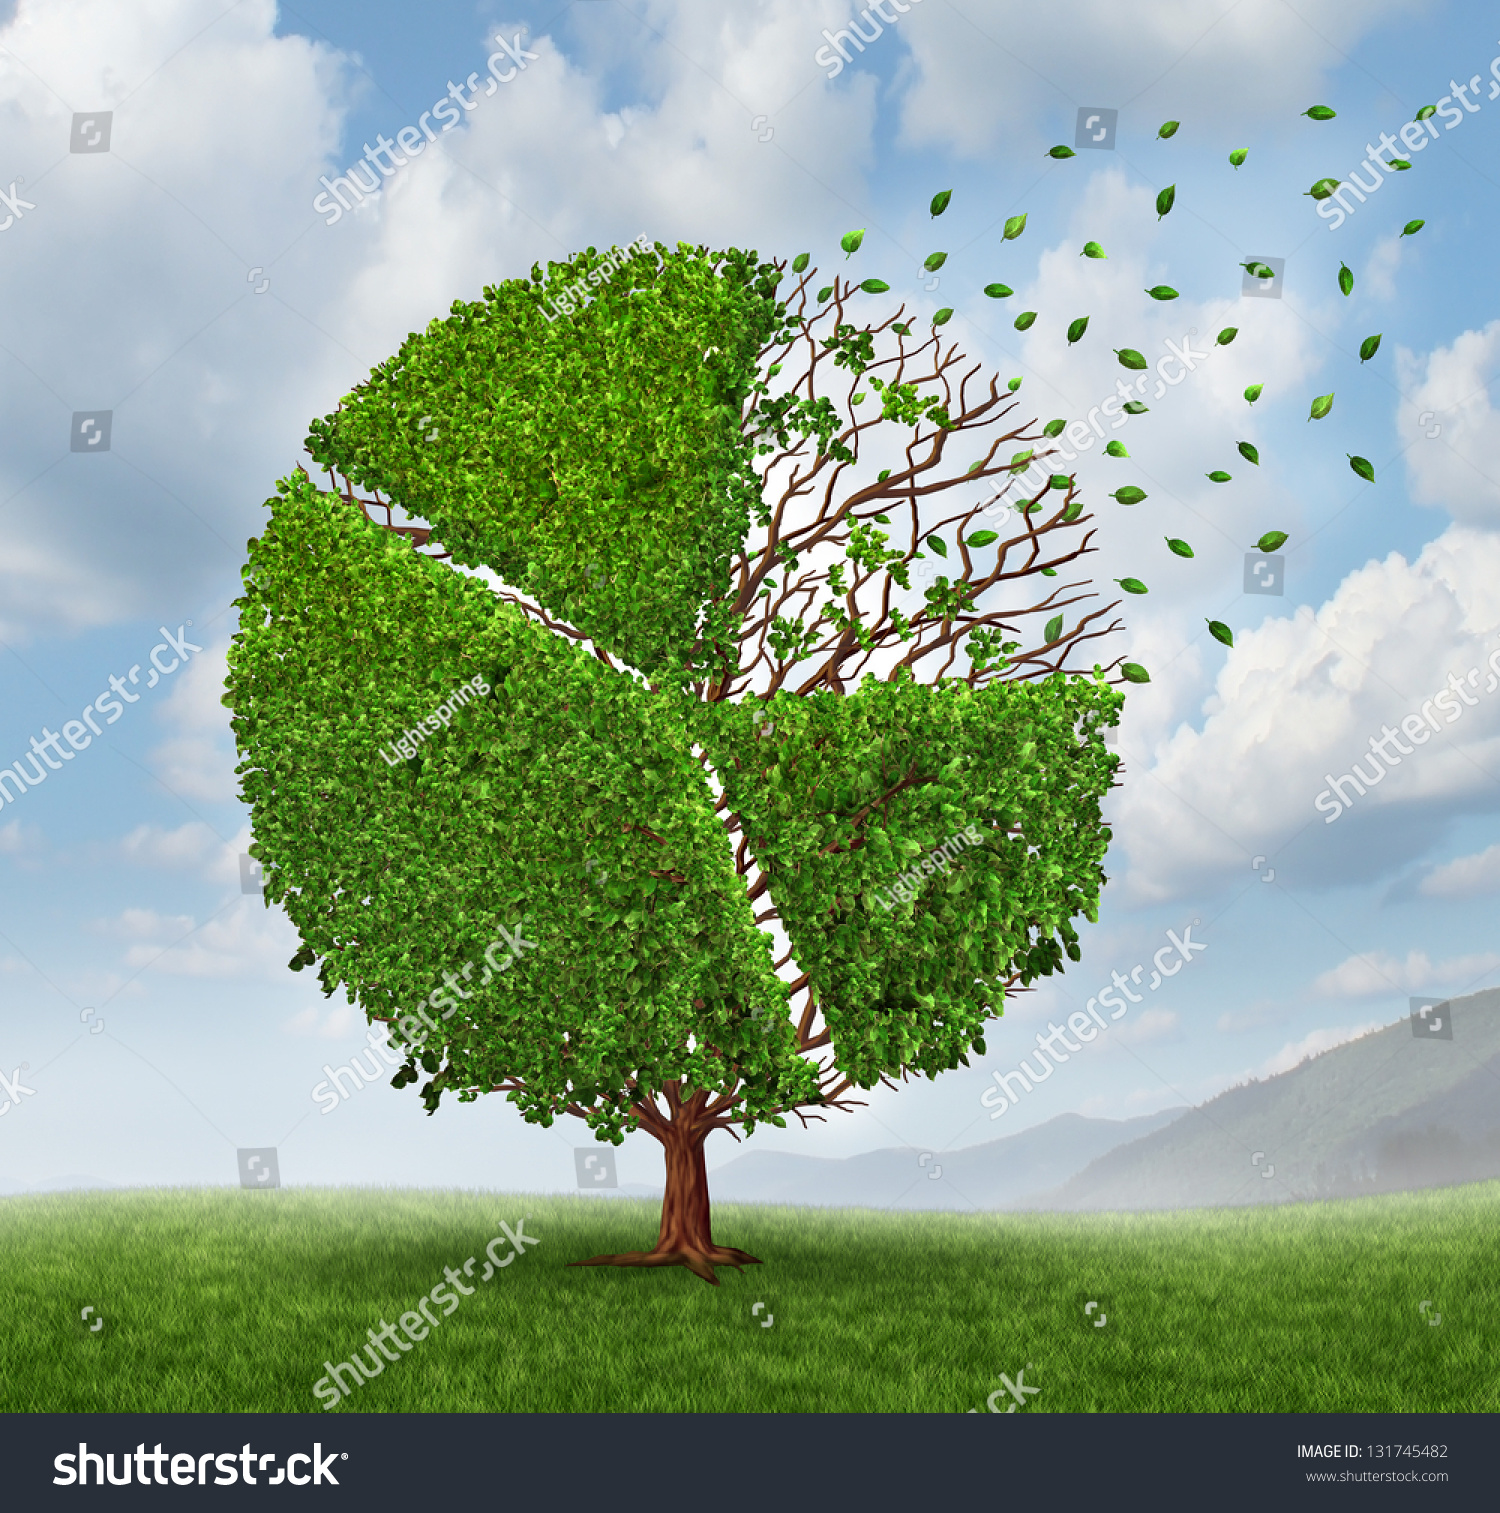 Finance Tree: Losing Market Share Pie Chart As A Growing Green Tree With